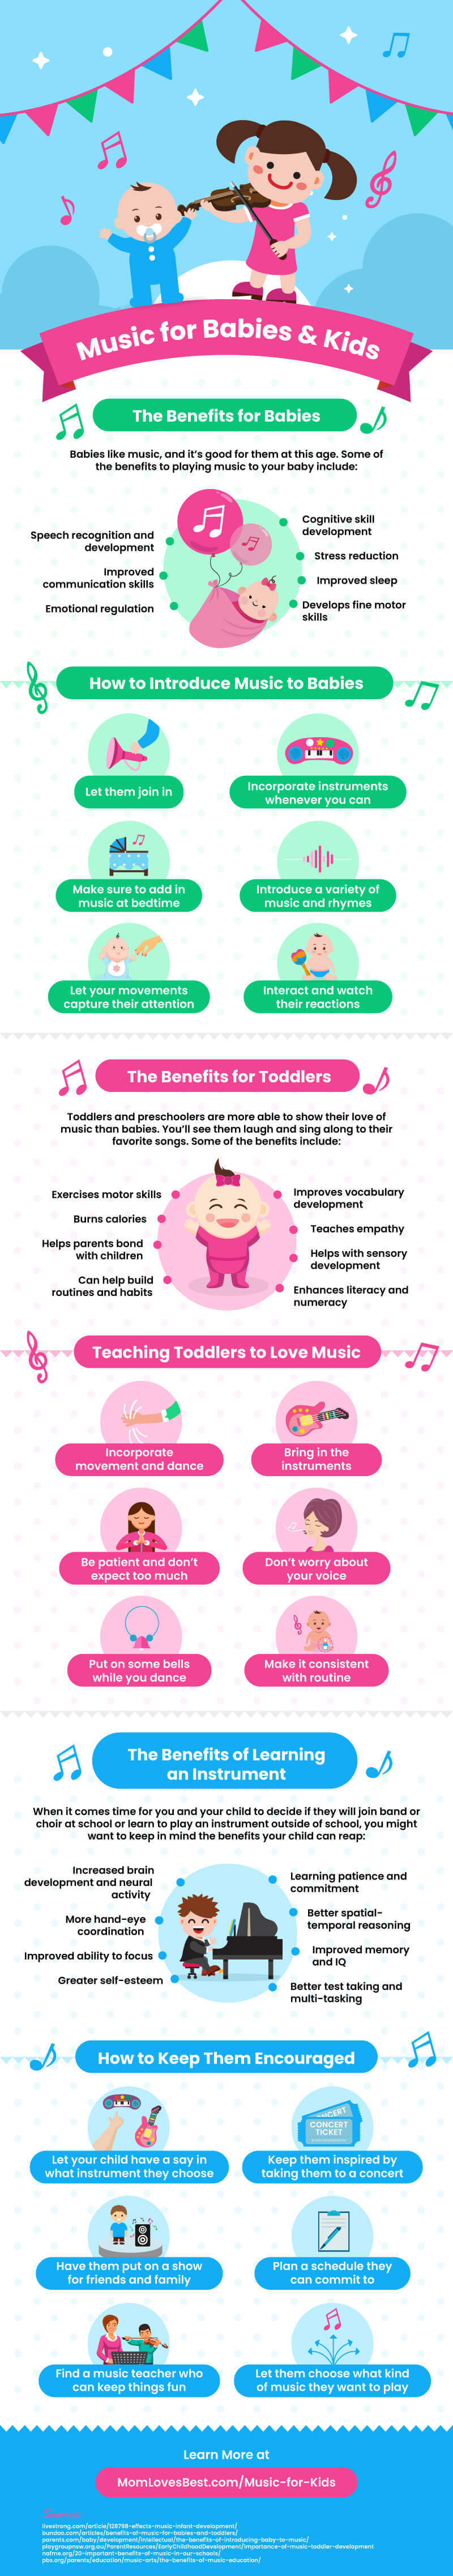 Parenting Musical Prodigies Infographic - Mom Loves Best